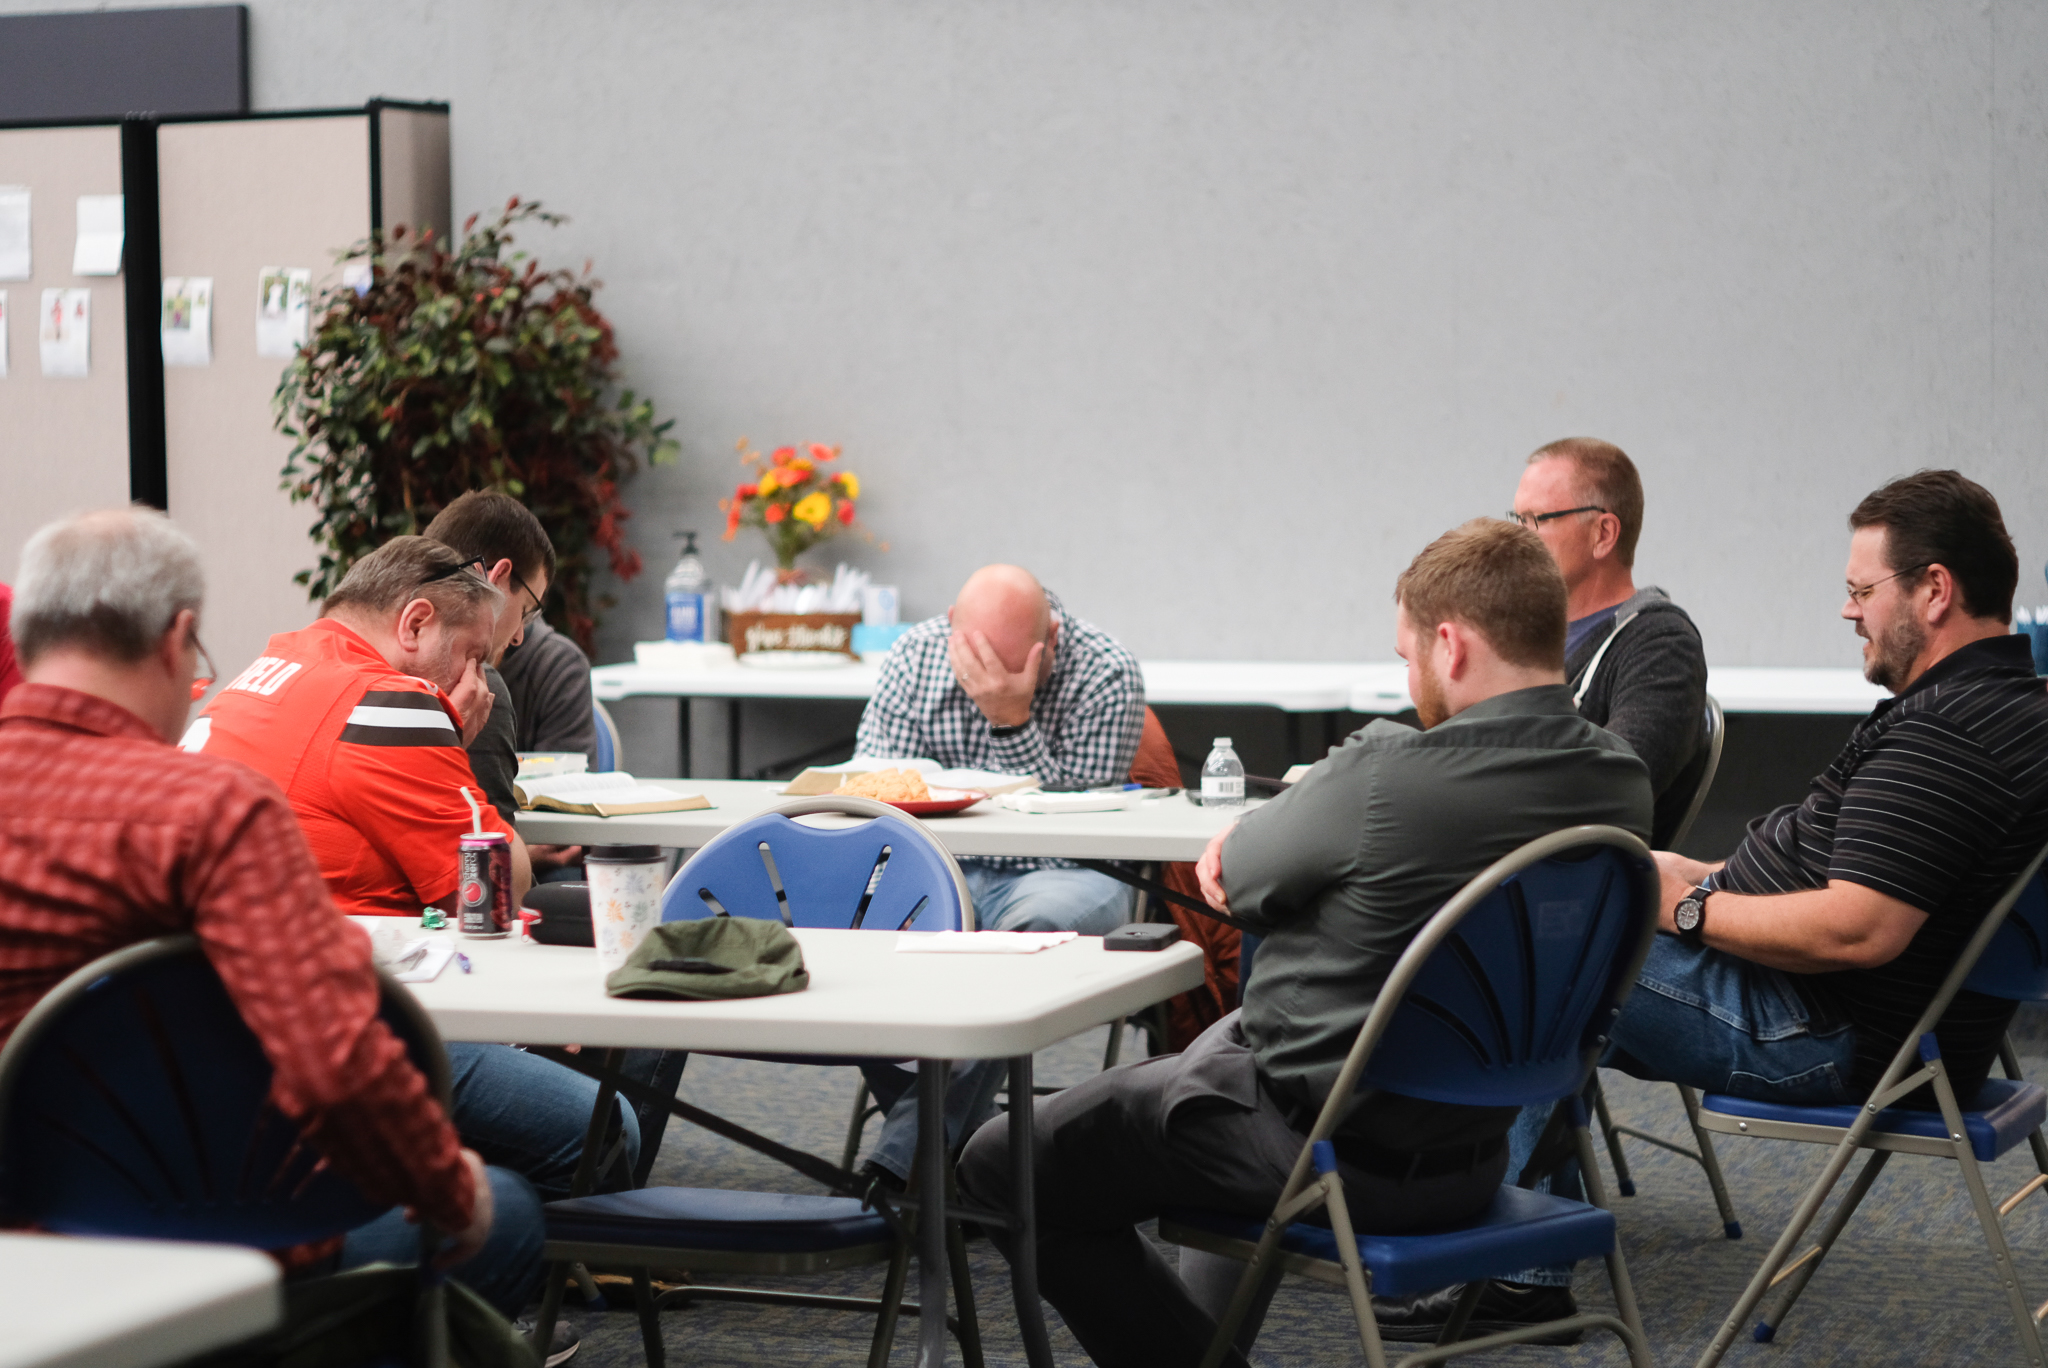 Wednesday Night Prayer Group - Please join us every Wednesday night for corporate prayer.Meets: 6:30pm on Wednesday